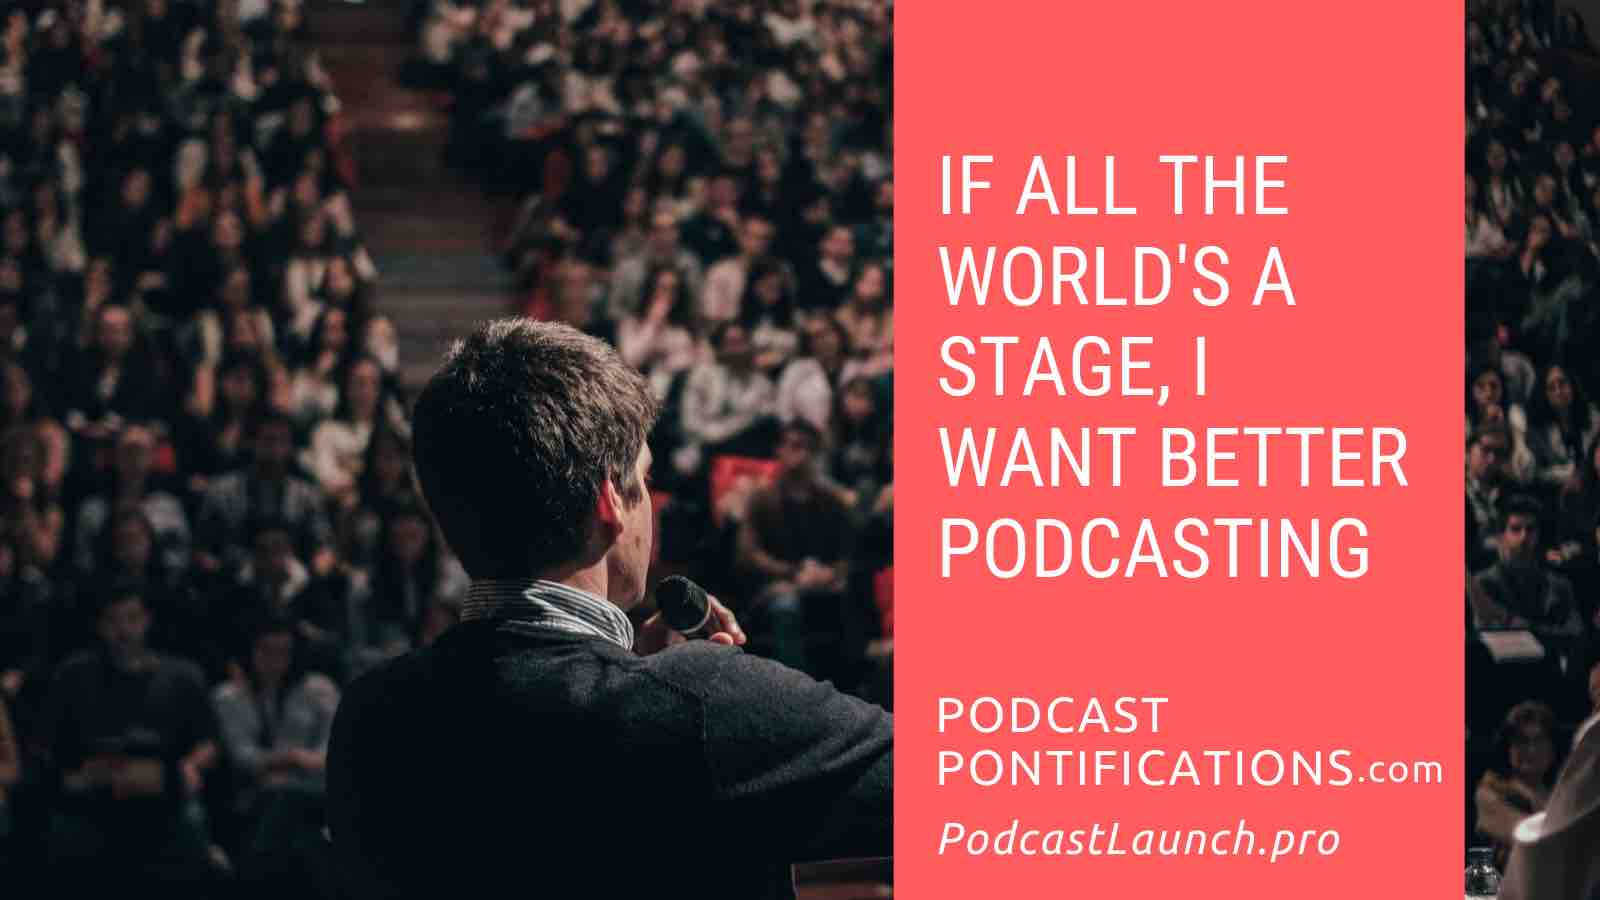 If All The World's A Stage, I Want Better Podcasting